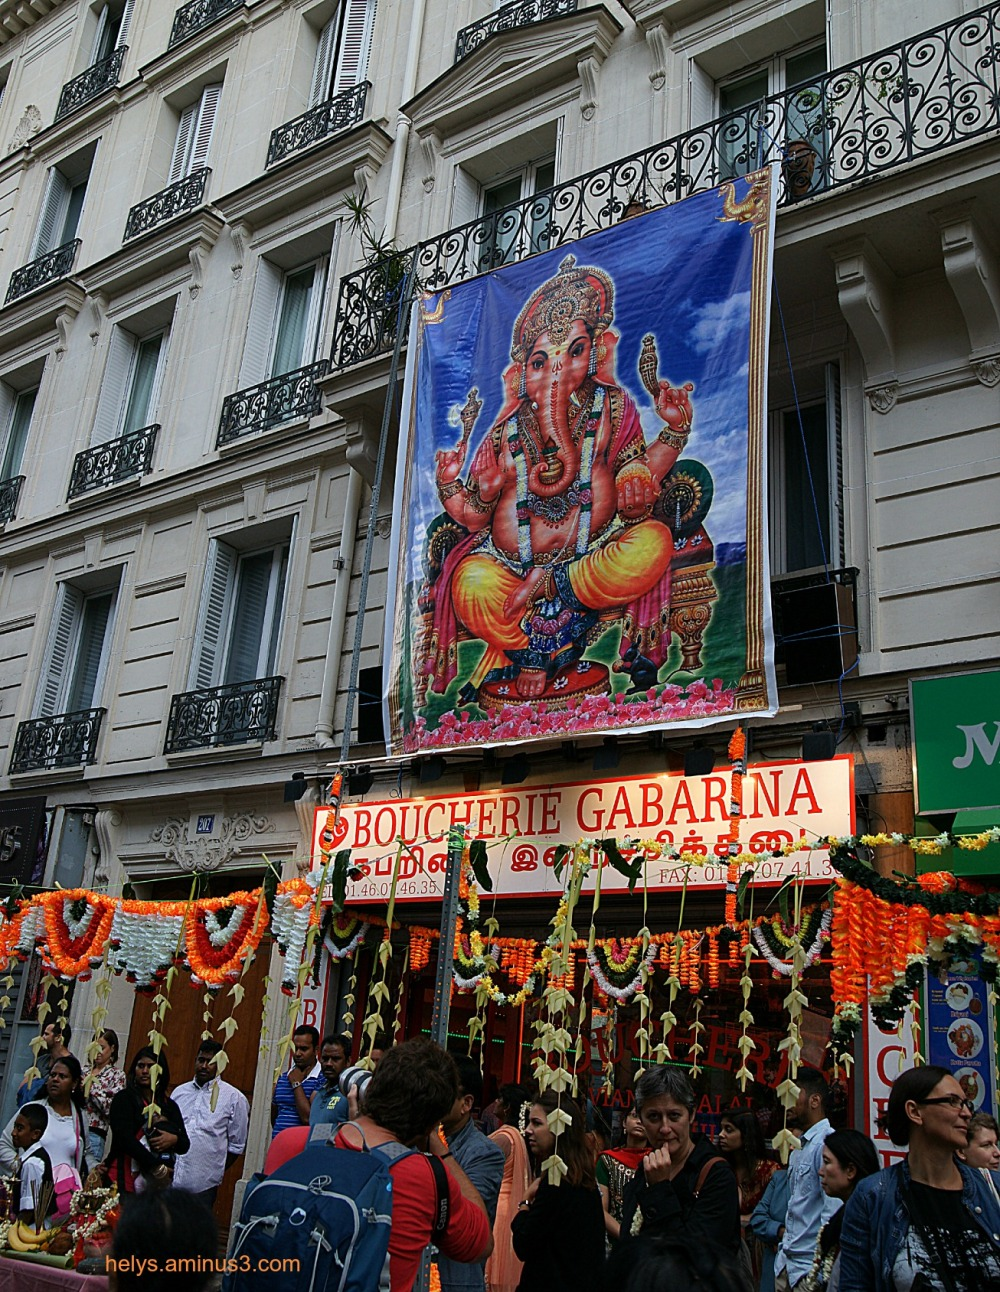 Ganesh party, Paris 2014: Colors and people